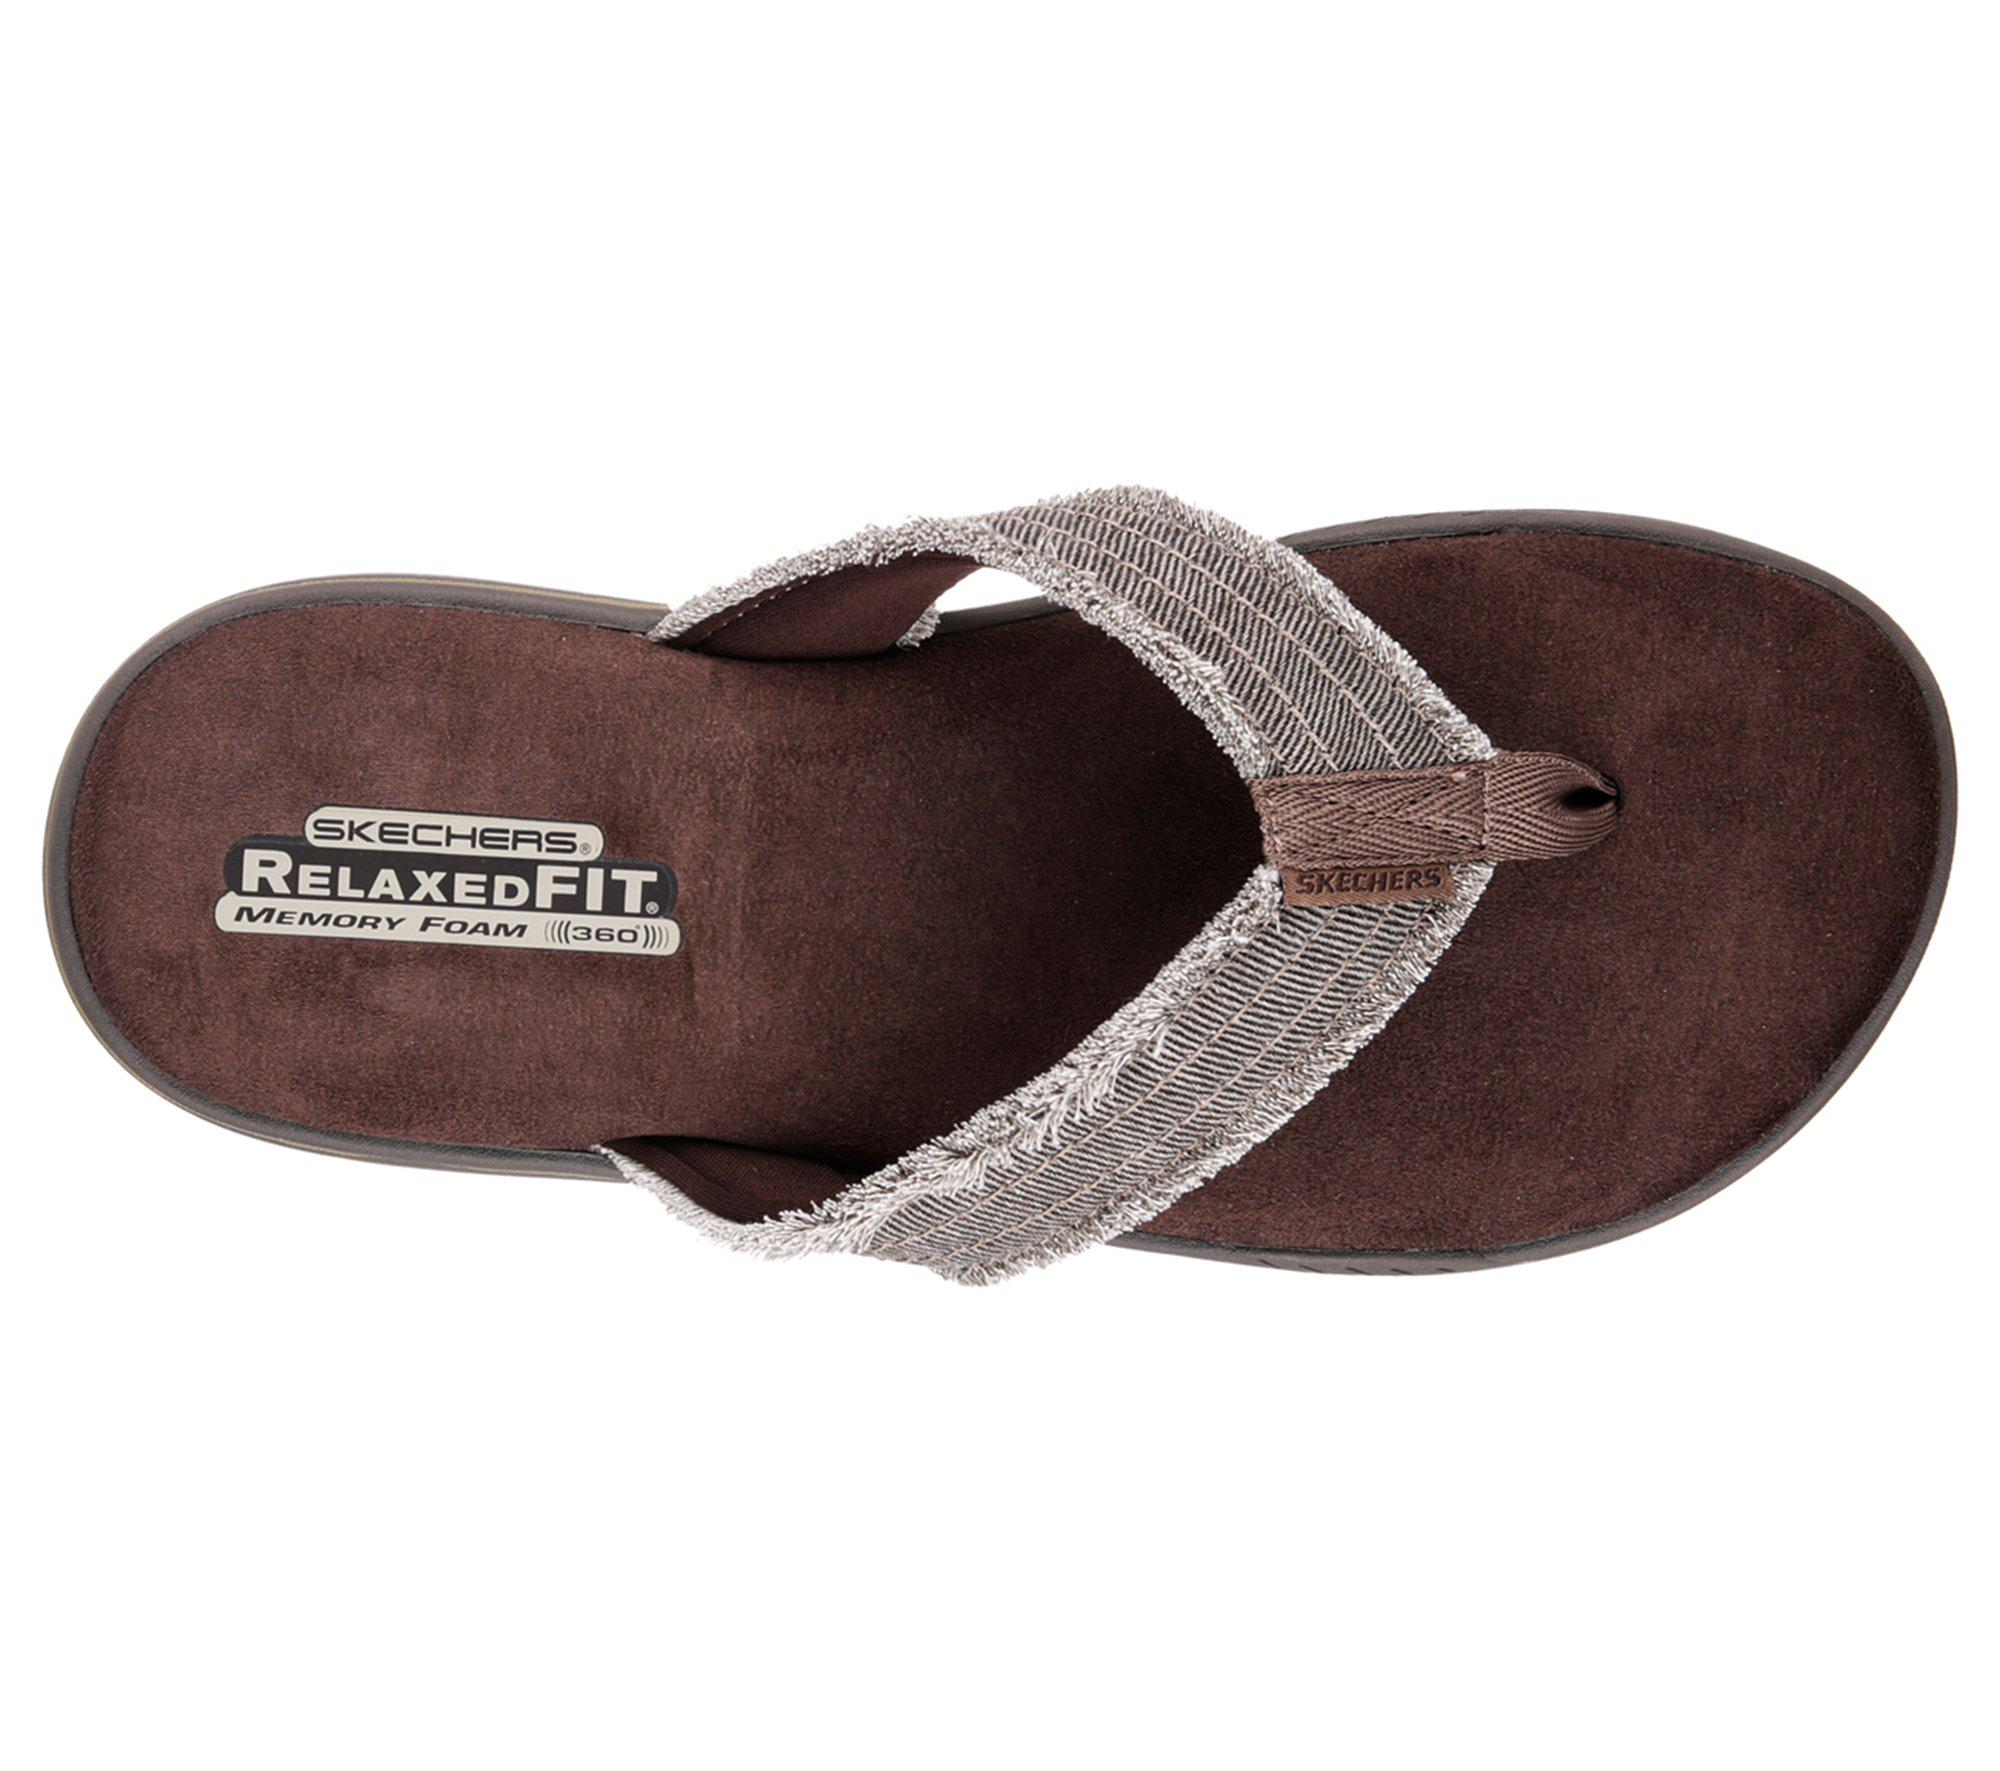 e270b70eec2e Skechers - Brown Relaxed Fit  Evented - Arven for Men - Lyst. View  fullscreen